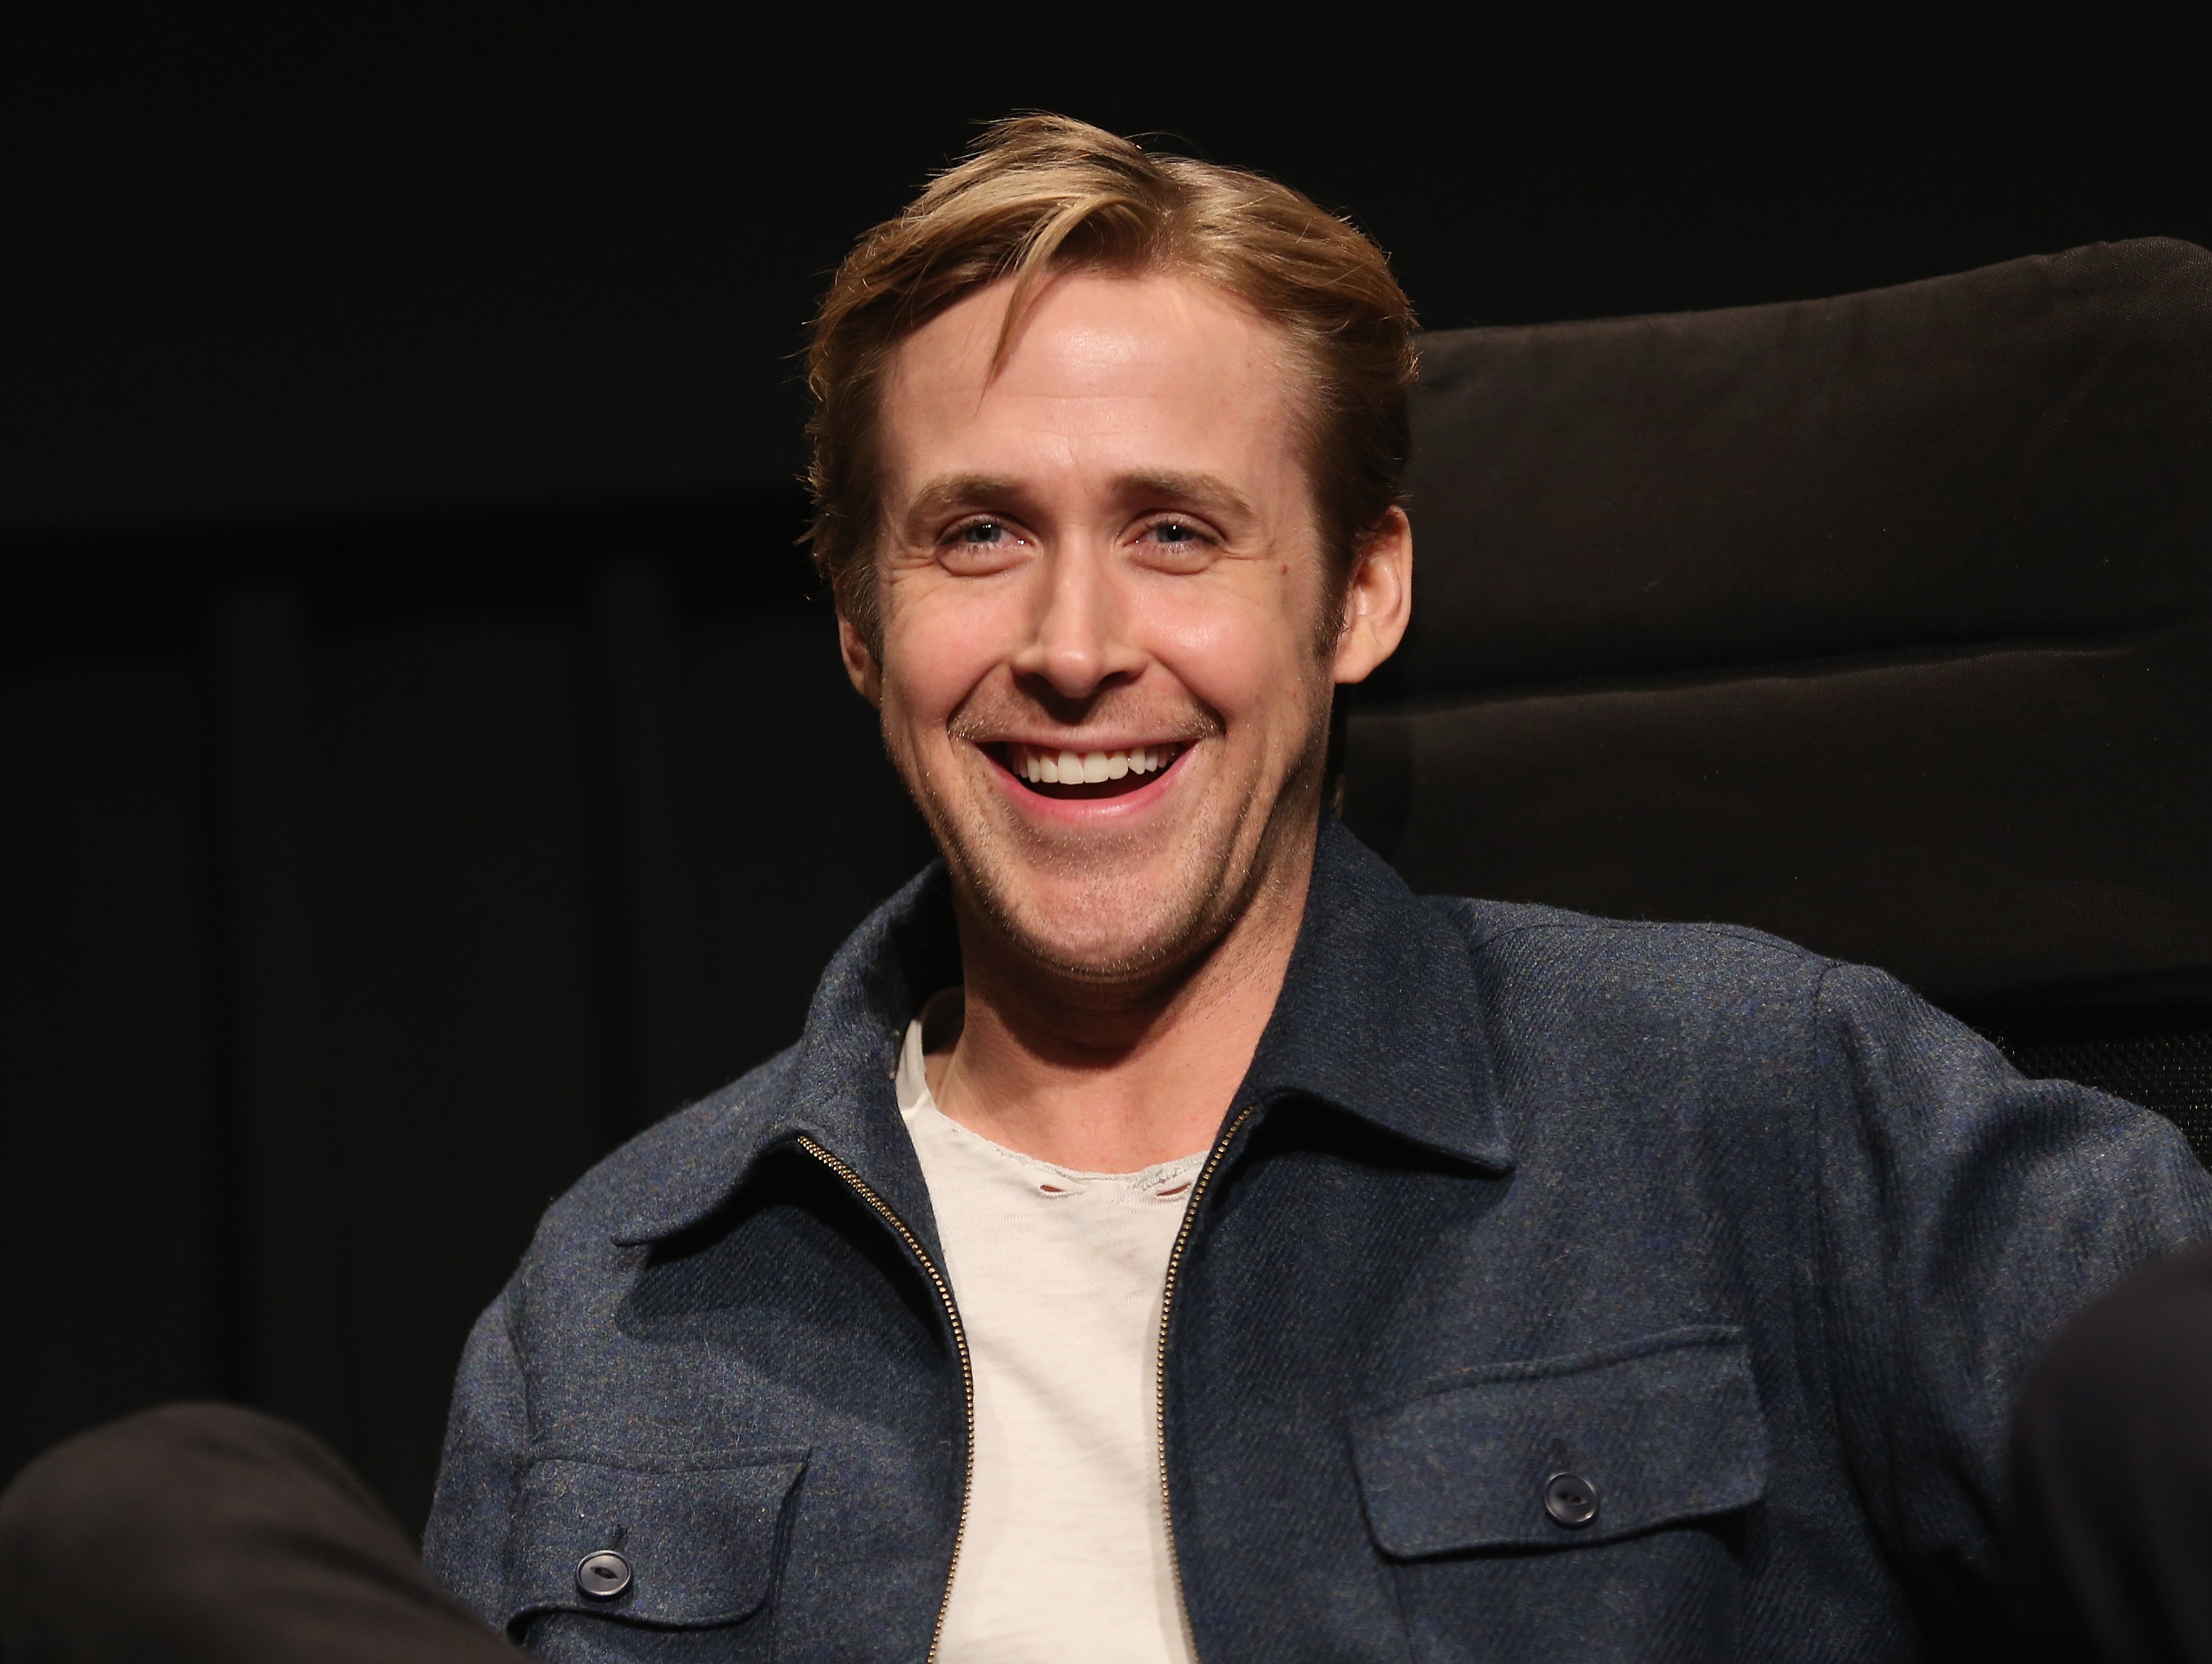 Great Job Funny Meme Ryan Gosling : Times ryan reynolds was hands down the funniest actor on twitter